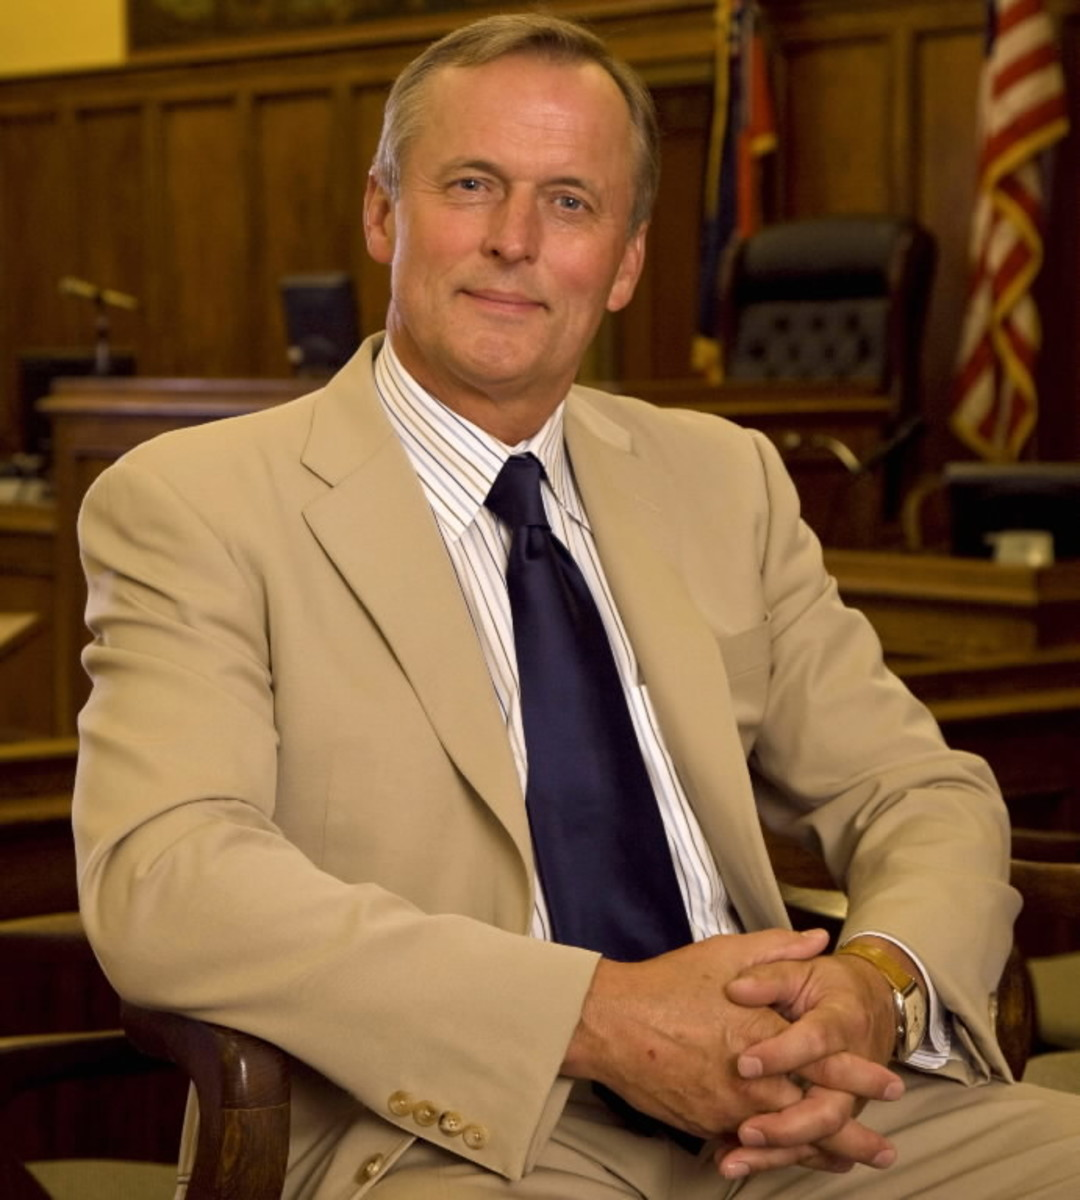 John Grisham- best selling 1990s author.